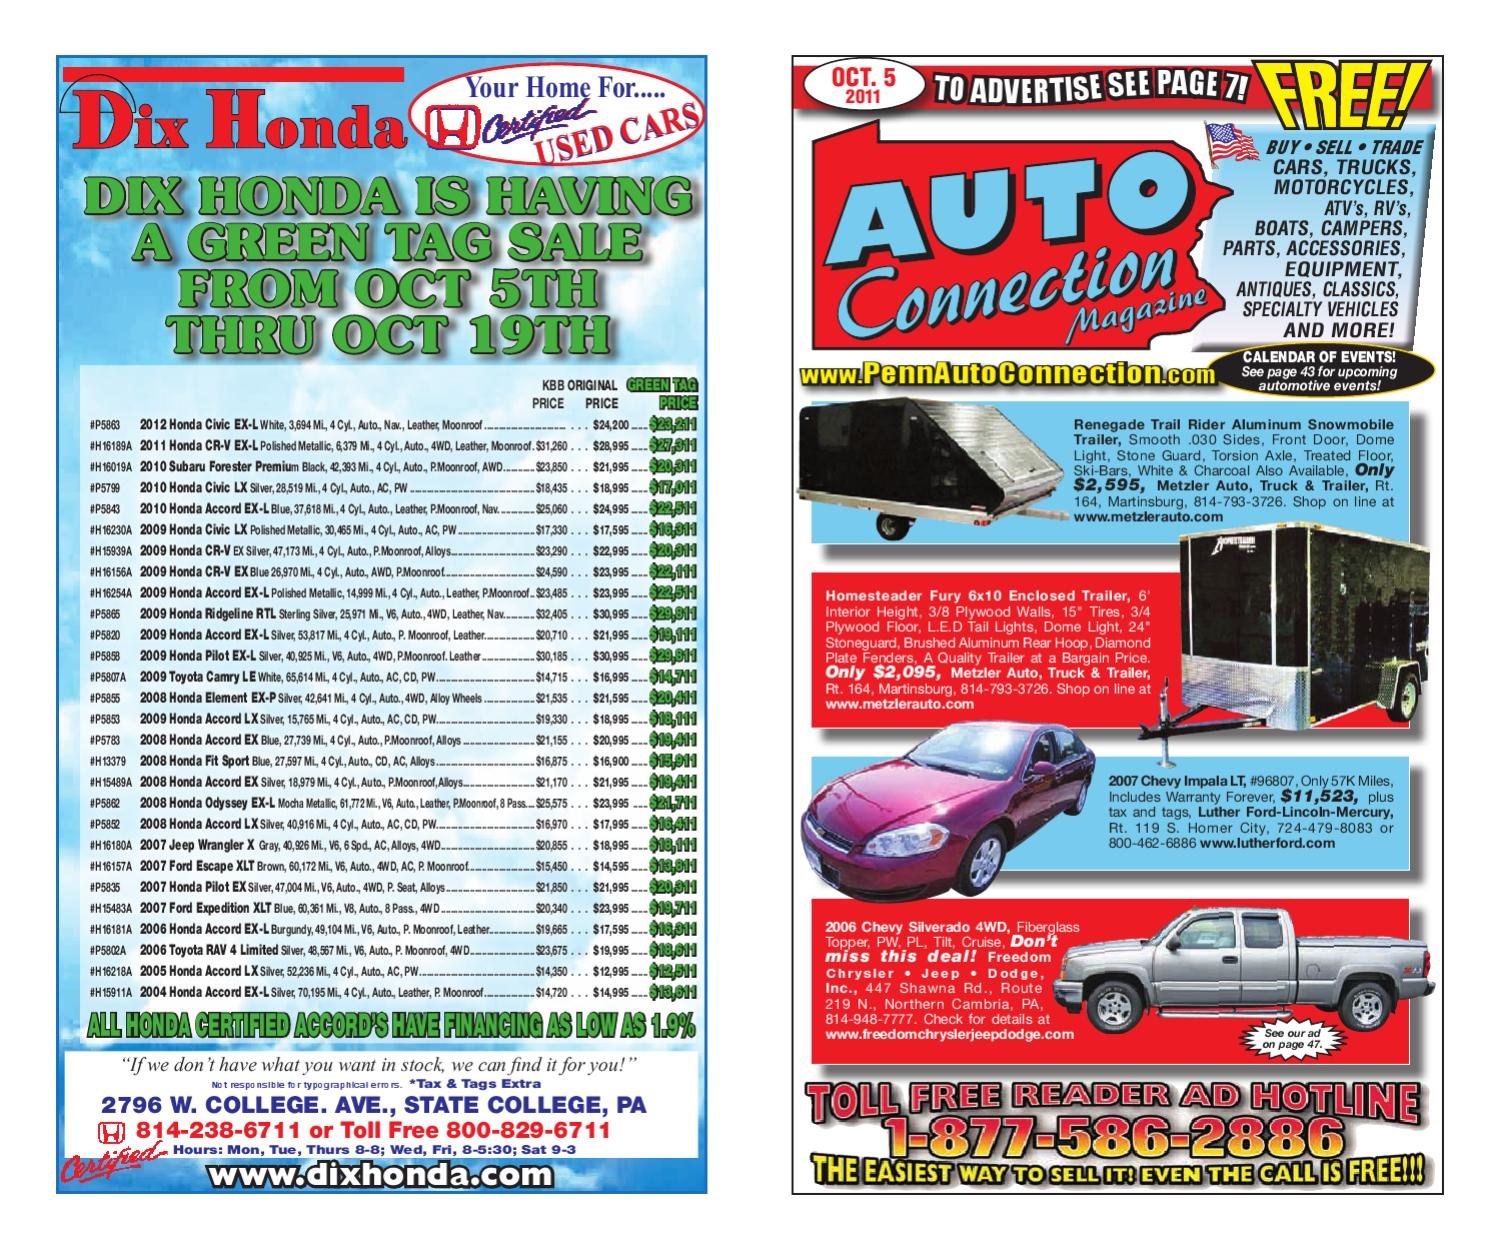 93b7419f0bb7 10-05-11 Auto Connection Magazine by Auto Connection Magazine - issuu